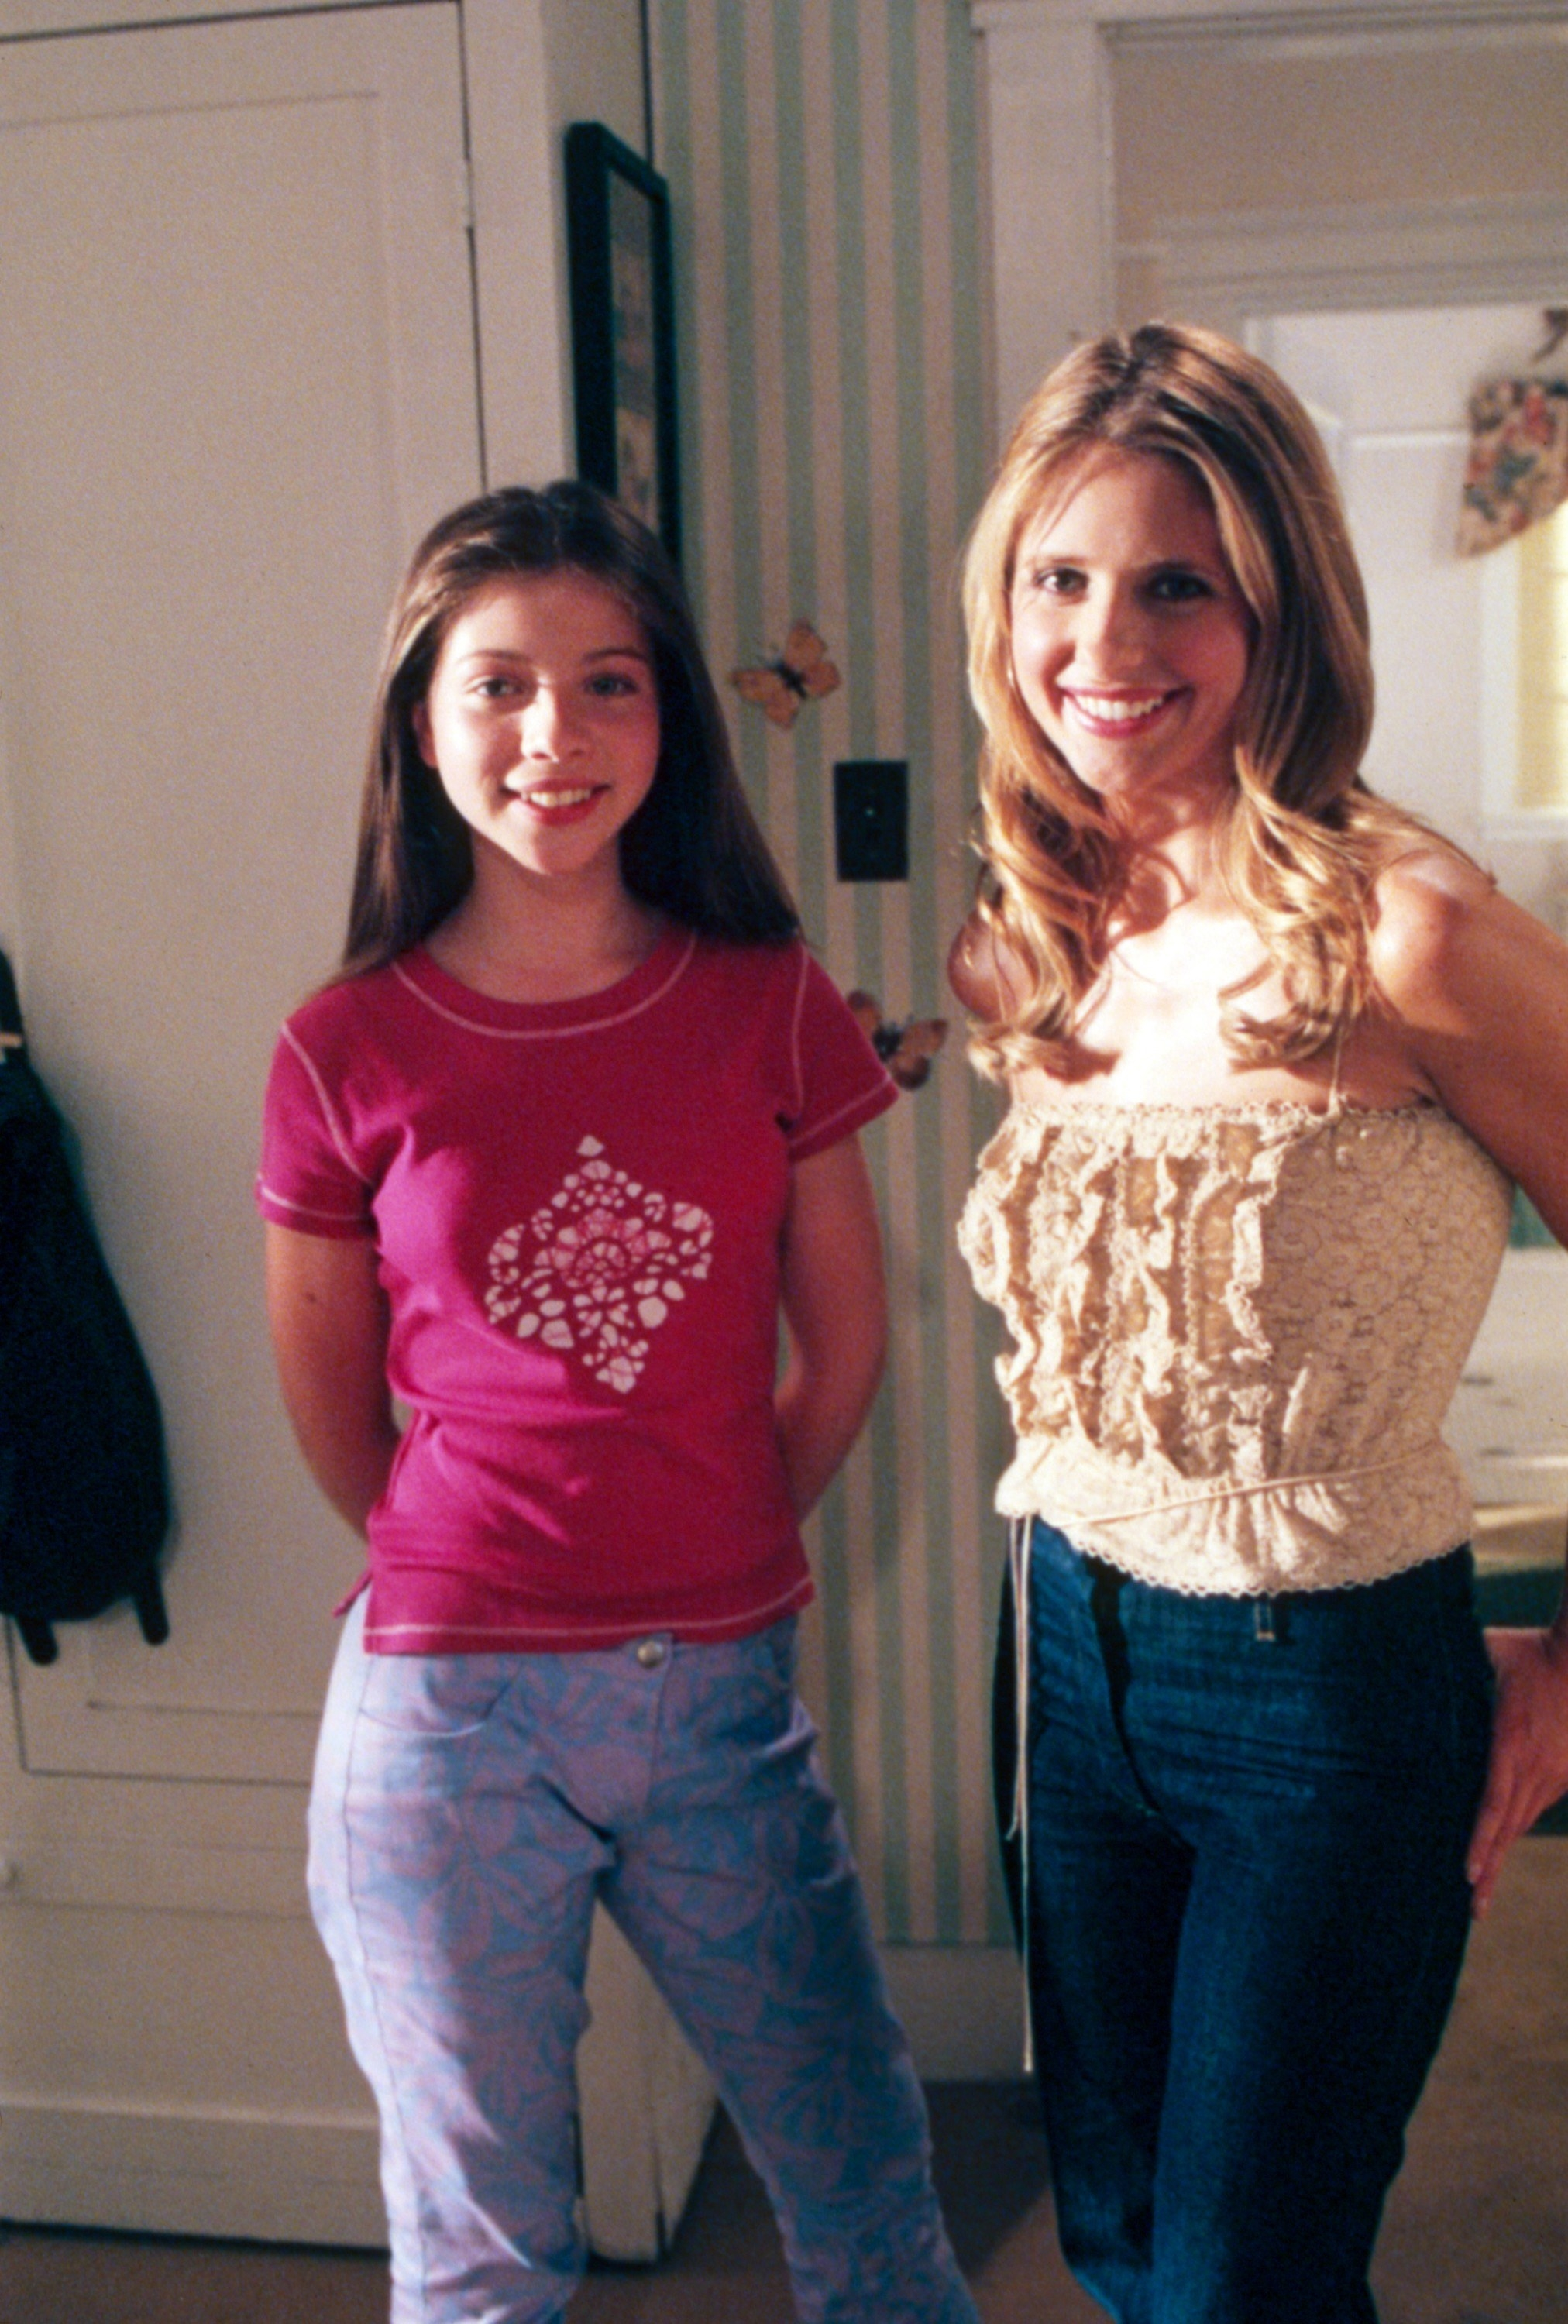 Michelle Trachtenberg and Sarah Michelle Geller stand next to each other on the set of Buffy the Vampire Slayer